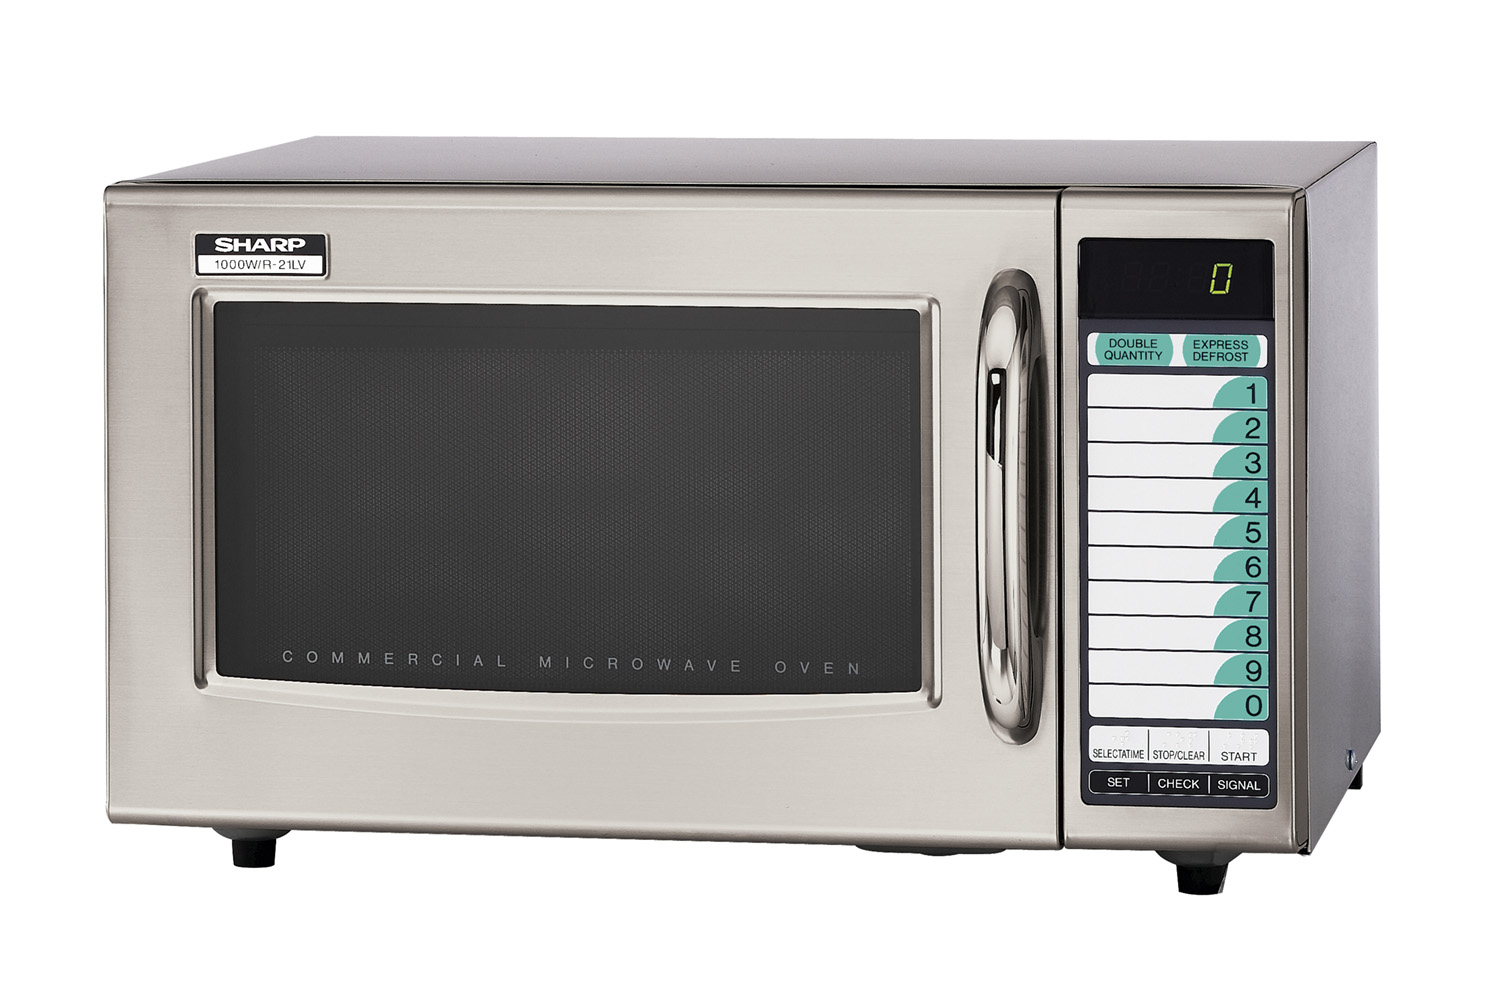 SHARP MICROWAVE, R21LVFTOUCH